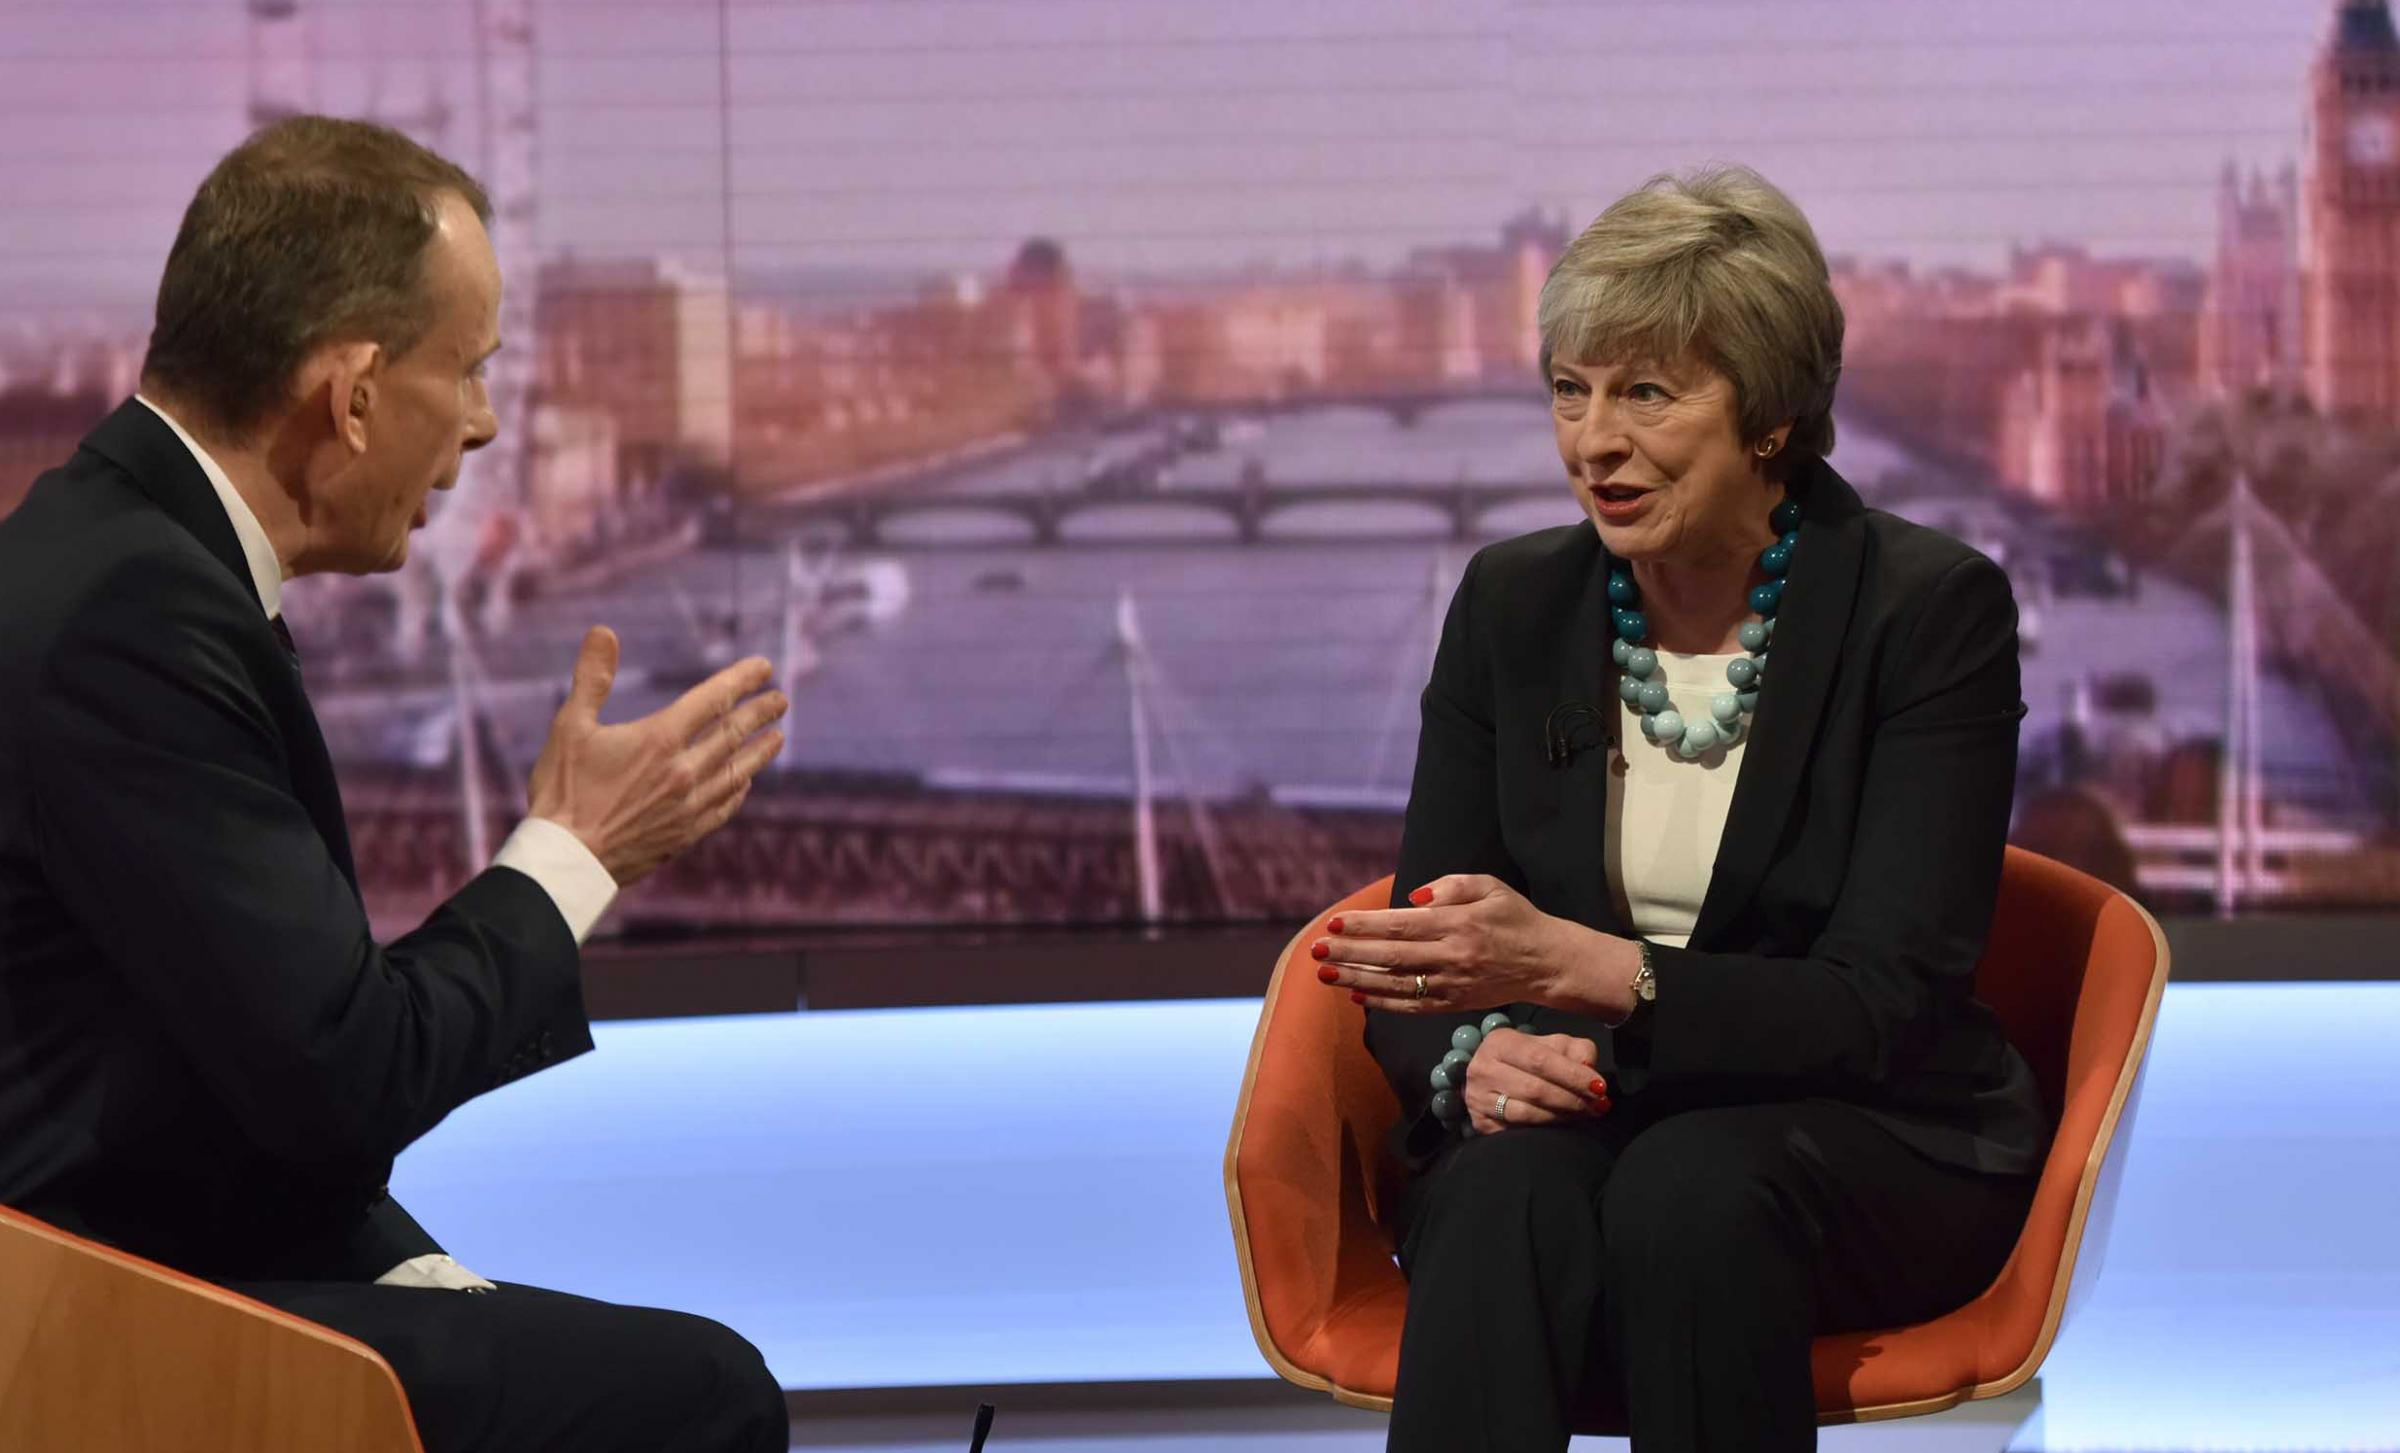 Theresa May told Andrew Marr the debate will start next week